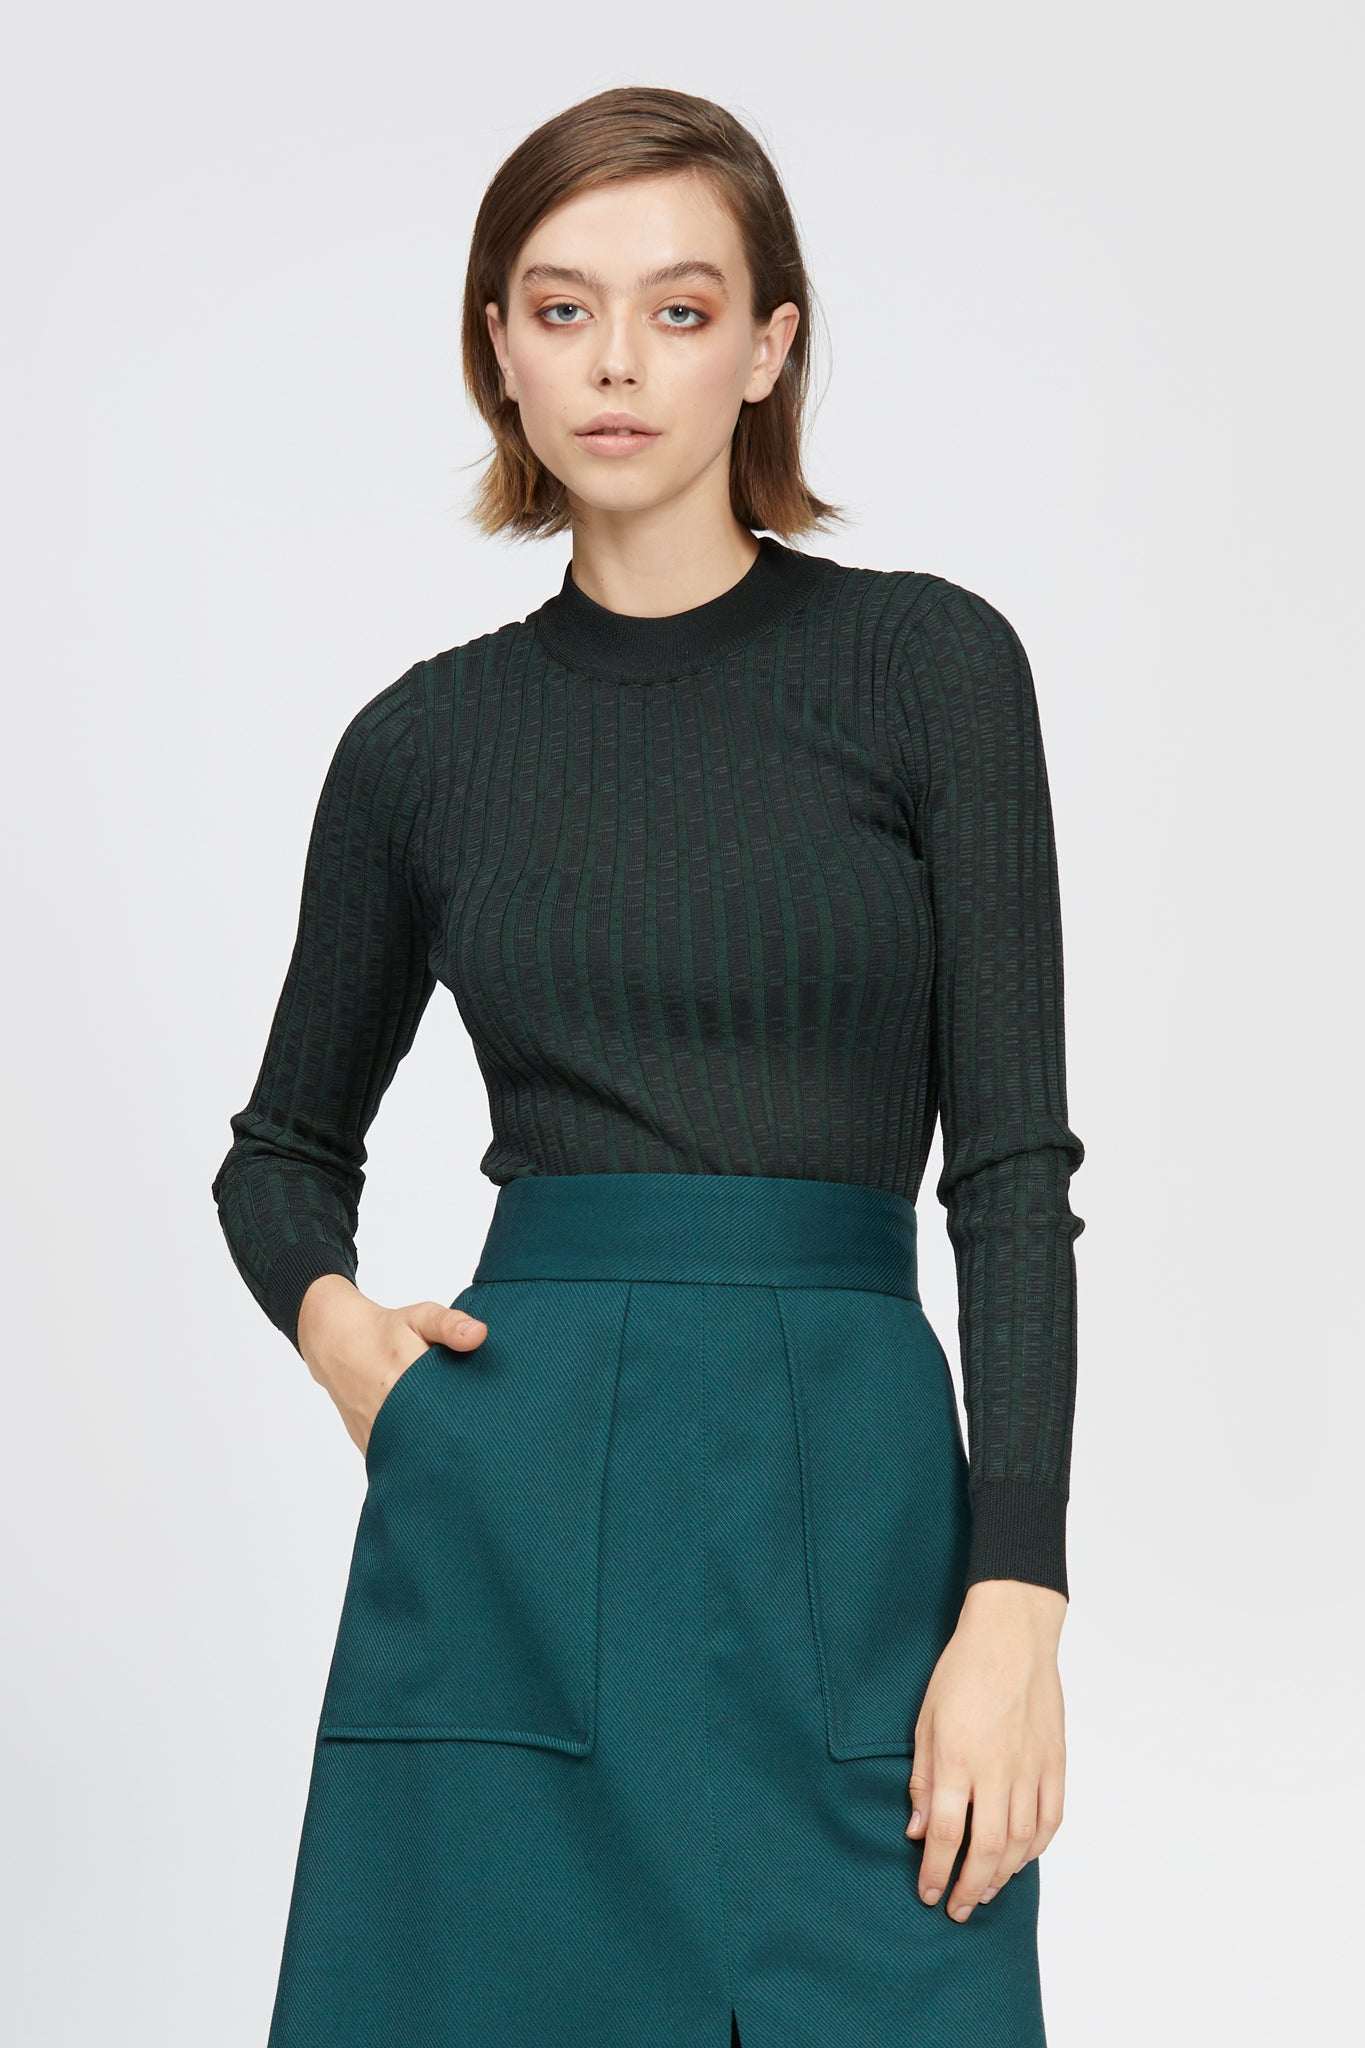 aquila top black/dark green